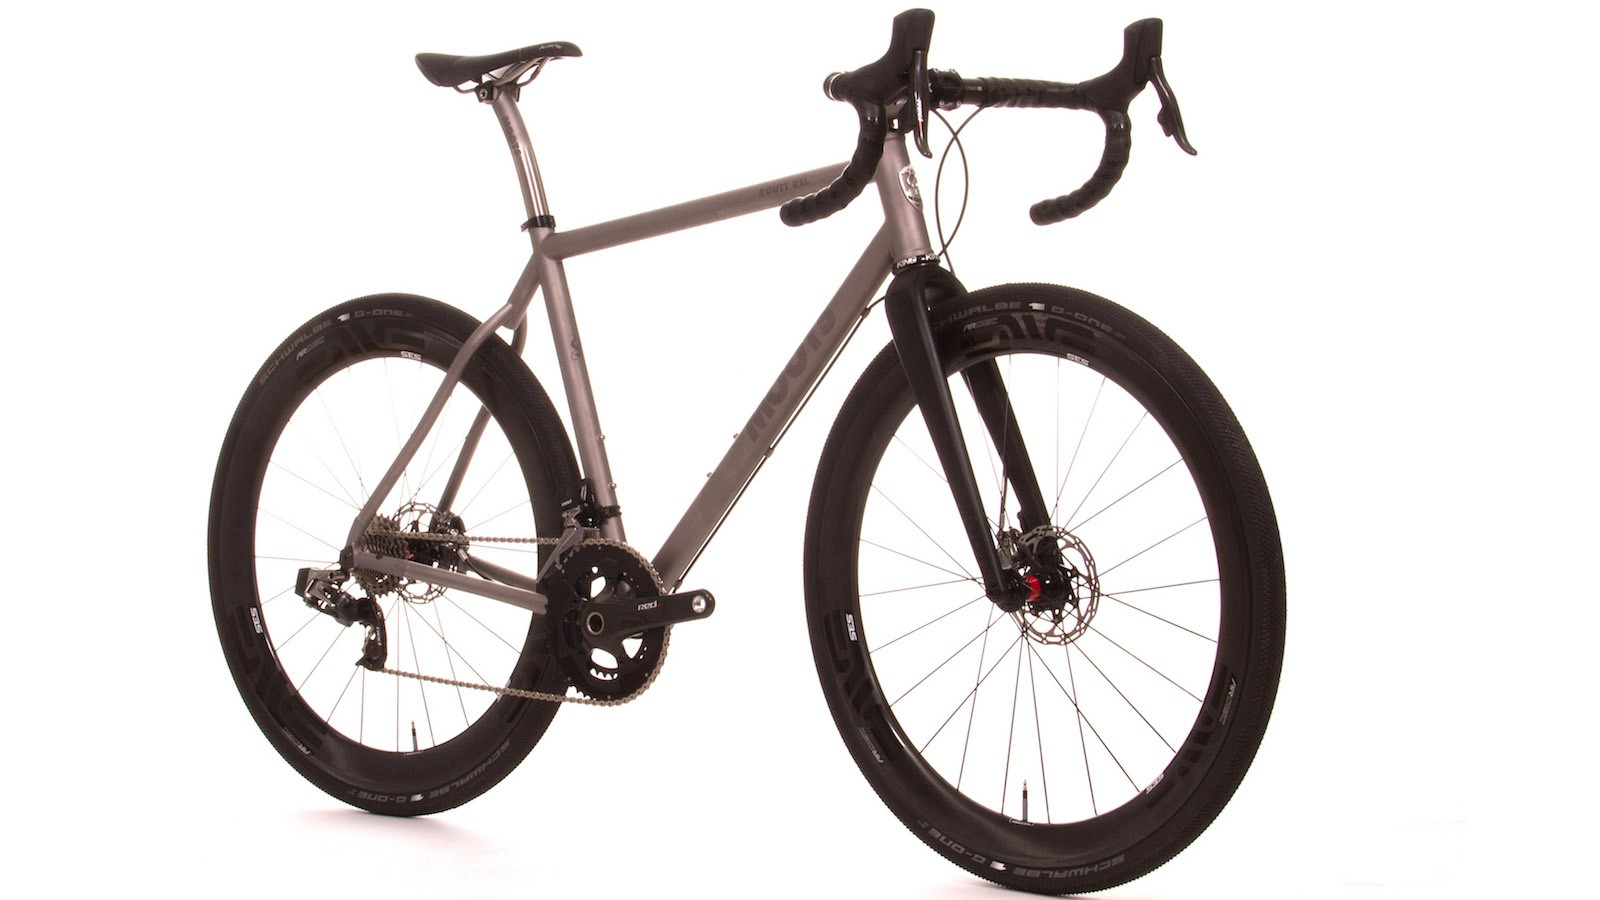 The Moots Routt RSL is a racy take on a gravel bike, handmade from titanium